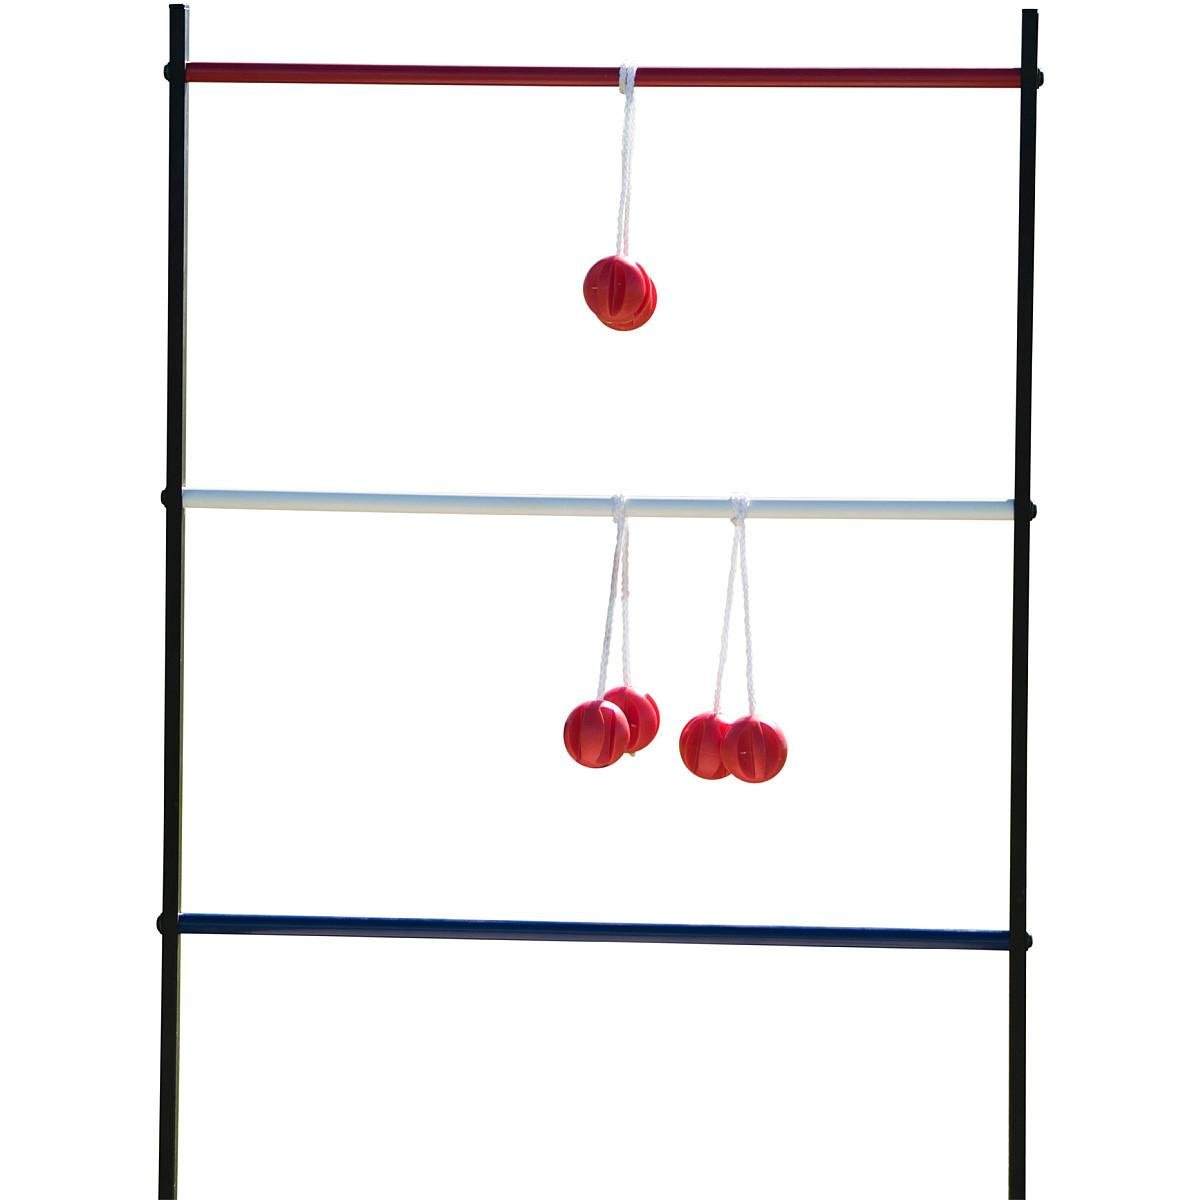 Sport Squad 2-in-1 Bean Bag/Cornhole and Ladder Toss Game Set for Indoor or Outdoor Use